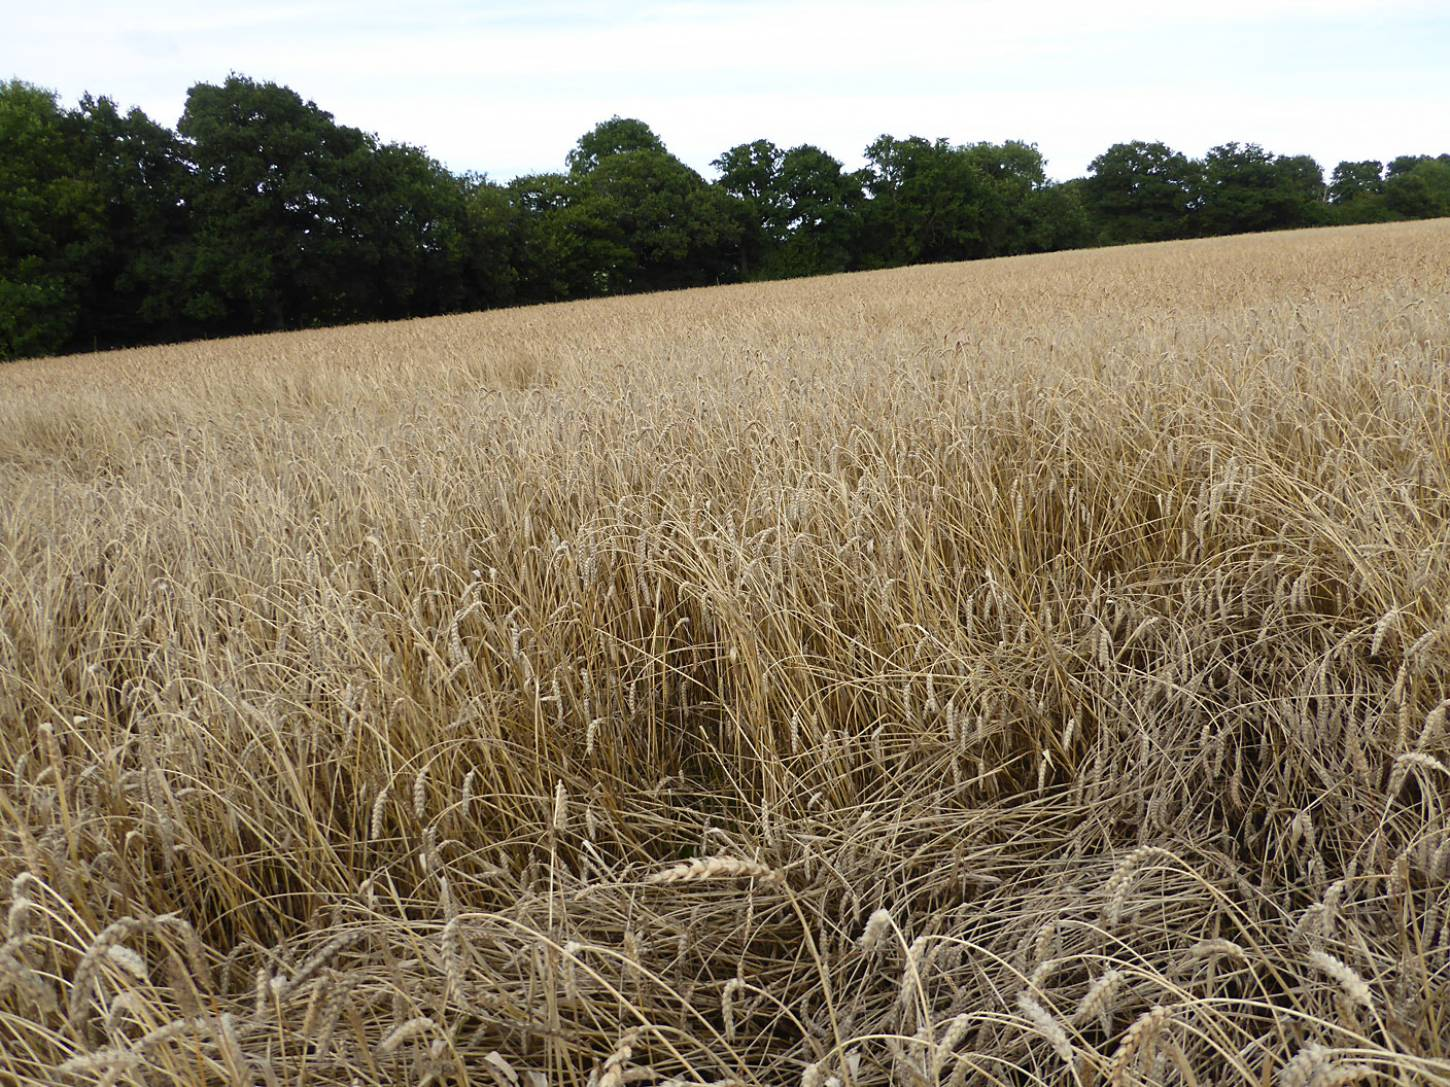 Ble de Haie, farm review pre-harvest '17 - 6:33pm&nbsp;1<sup>st</sup>&nbsp;Aug.&nbsp;'17  <a href='http://maps.google.com/?t=h&q=51.209353,-0.086822&z=18&output=embed' target=_blank><img src='http://www.brockwell-bake.org.uk/img/marker.png' style='border:none;vertical-align:top' height=16px></a>